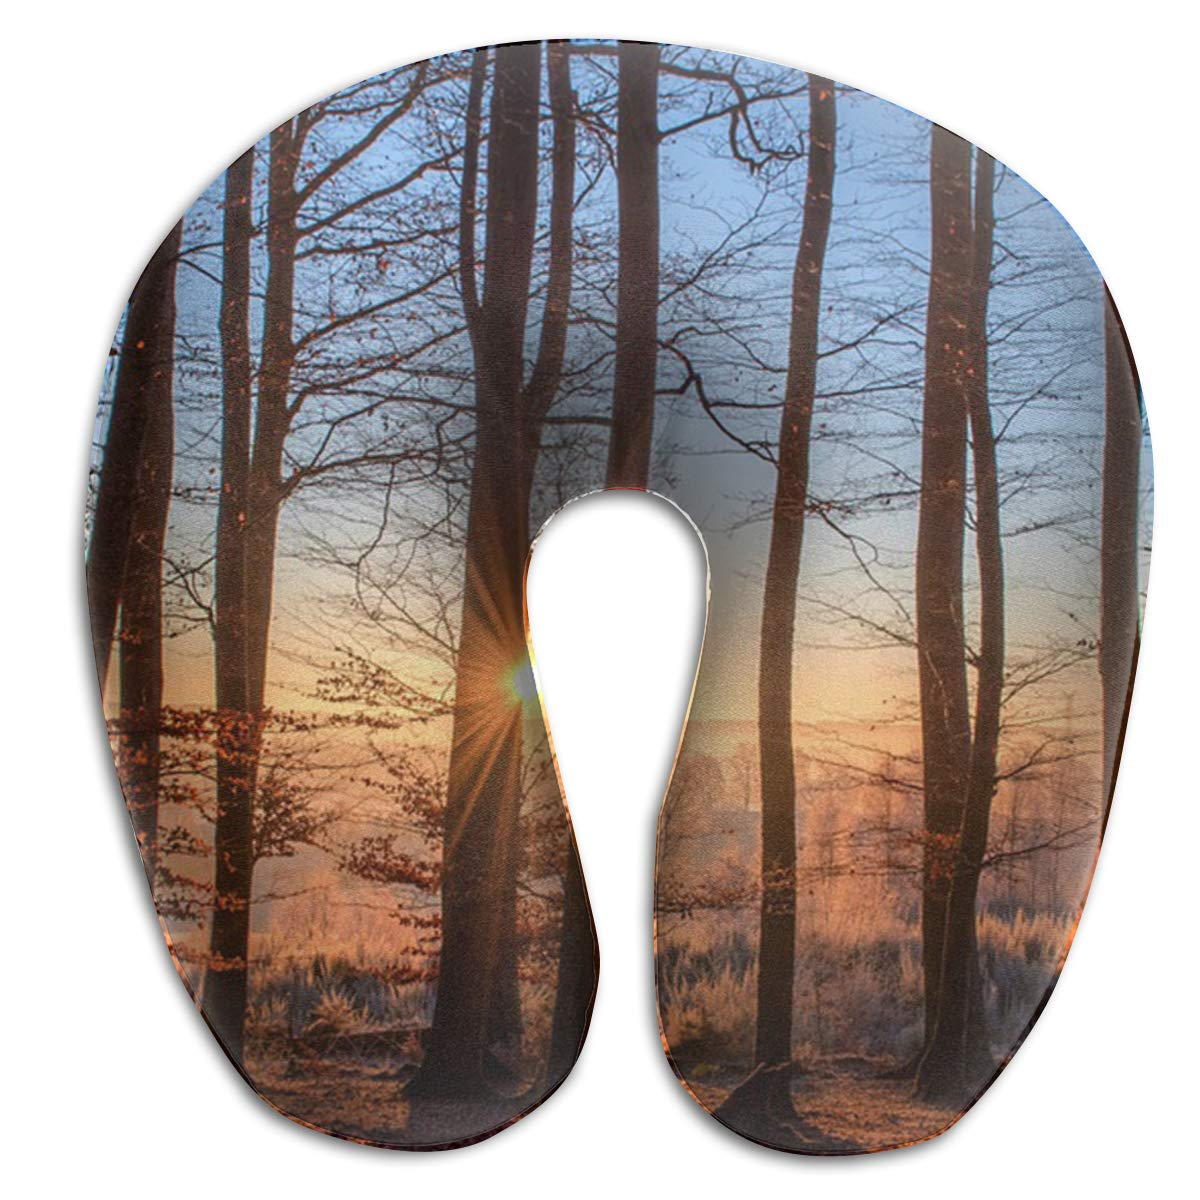 Raglan Carnegie Forest Landscape Sun Trees Nature Wood Light Travel Pillow Memory Foam Neck Support On A Train Airplane Car Bus Or While Camping - Comfortable U Shaped Cushion